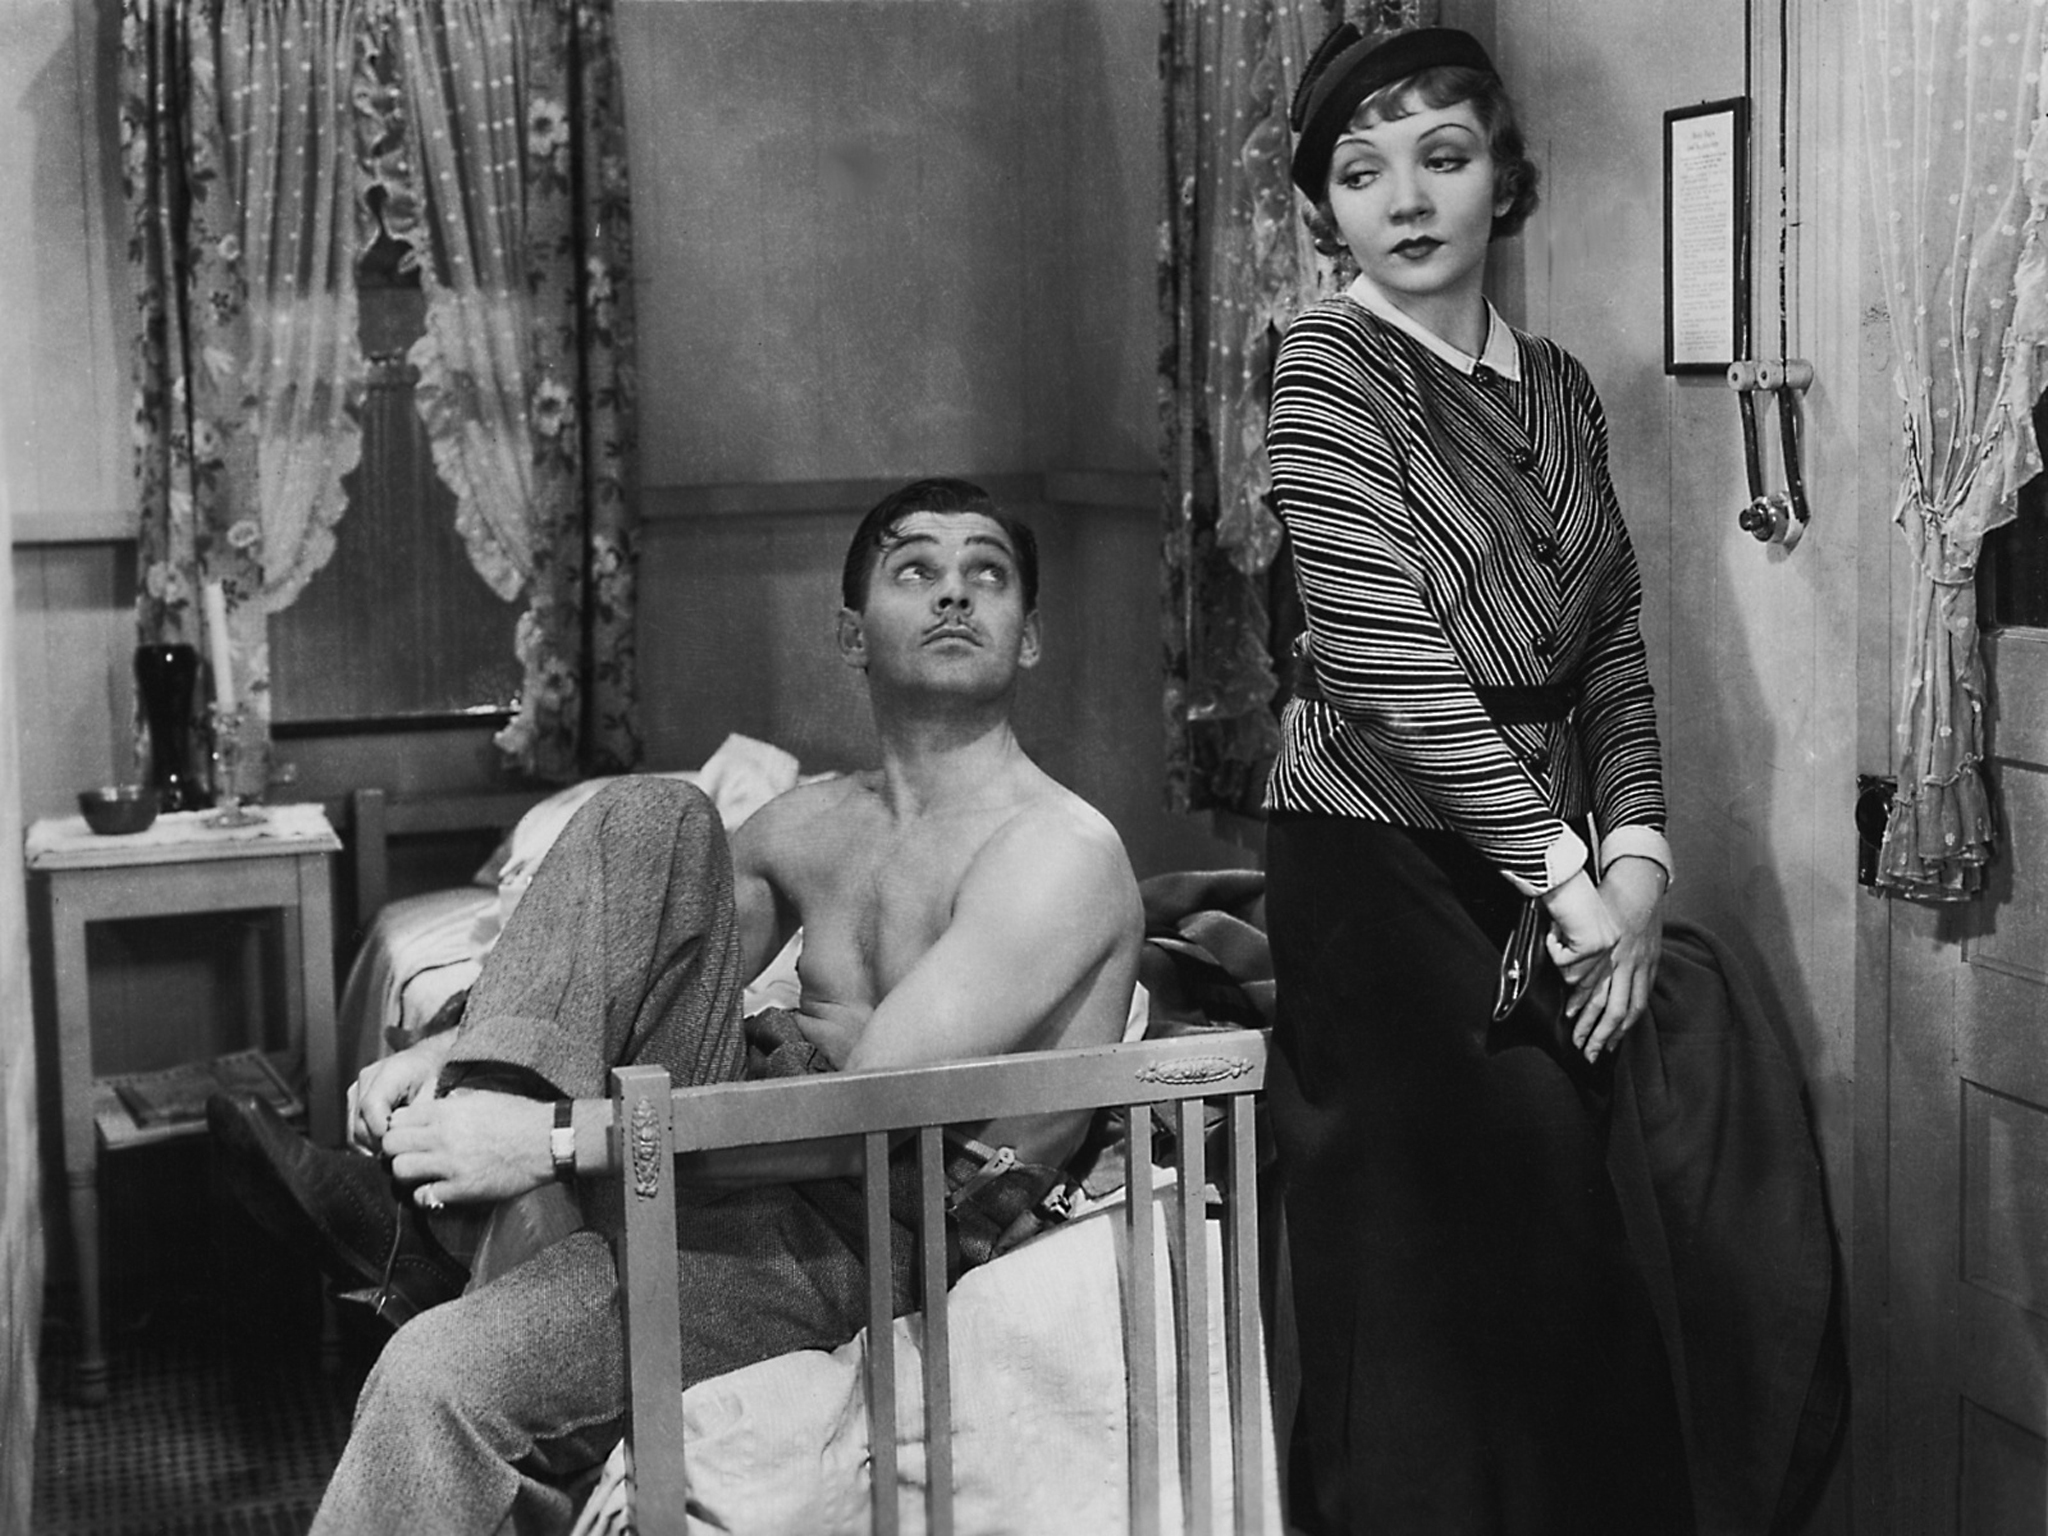 The 100 best comedy movies, It Happened One Night